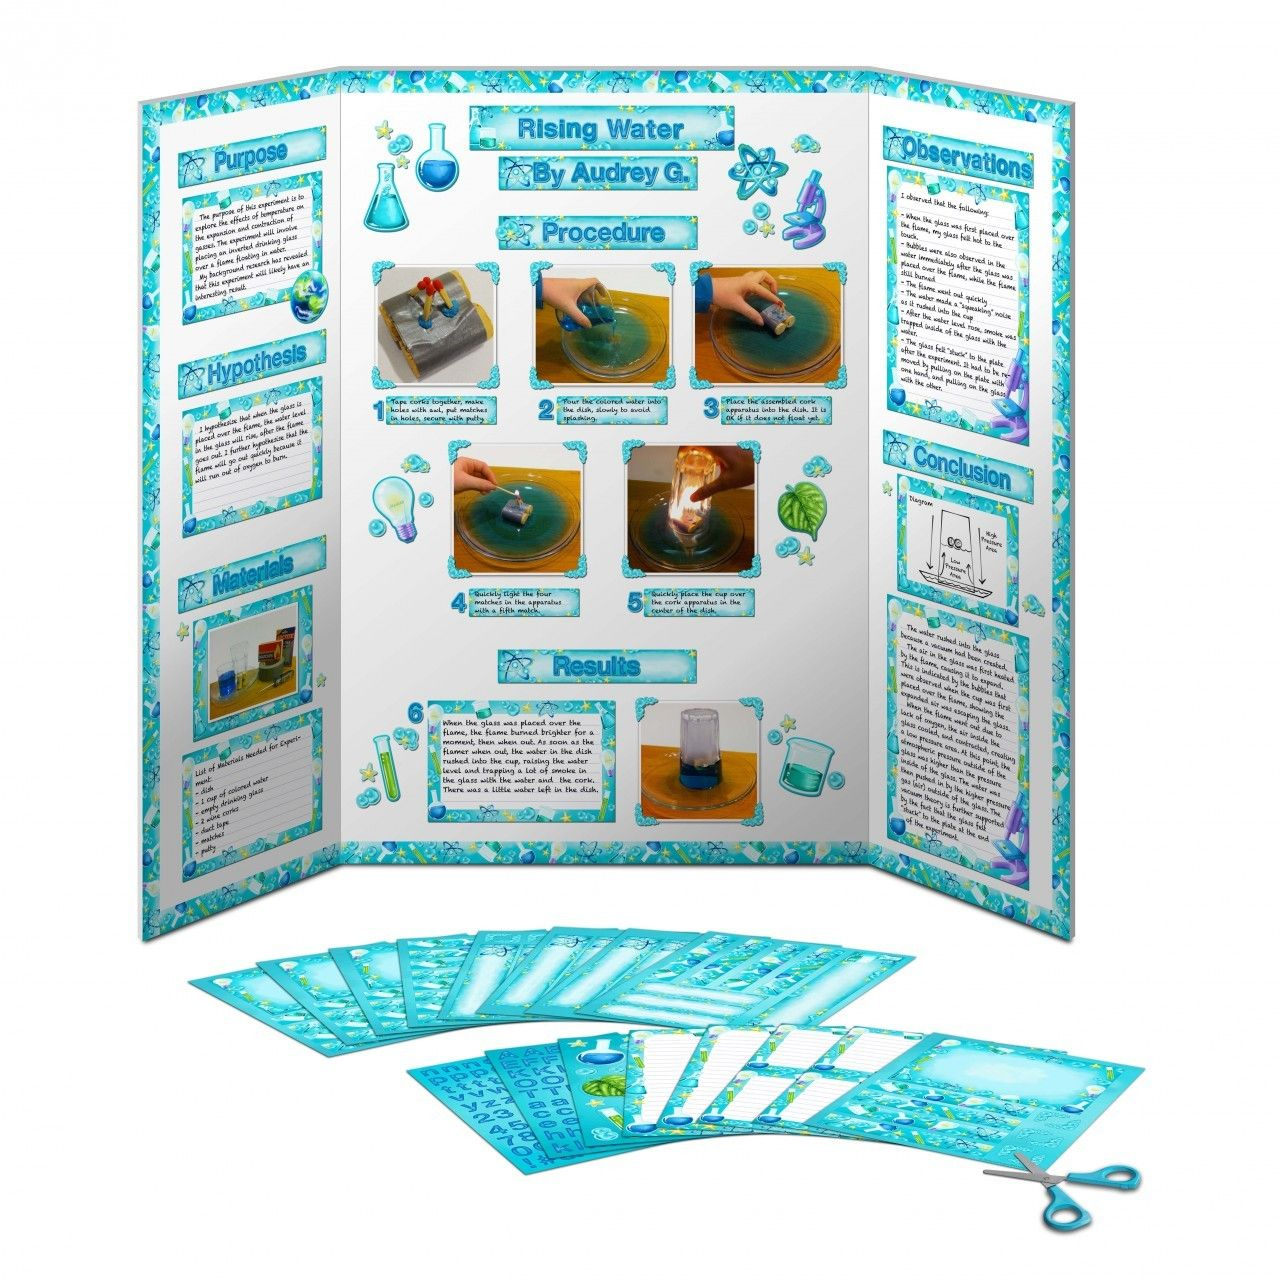 picture about Science Fair Project Printable Headings titled Science Acceptable Exhibit Board Package Science Science affordable